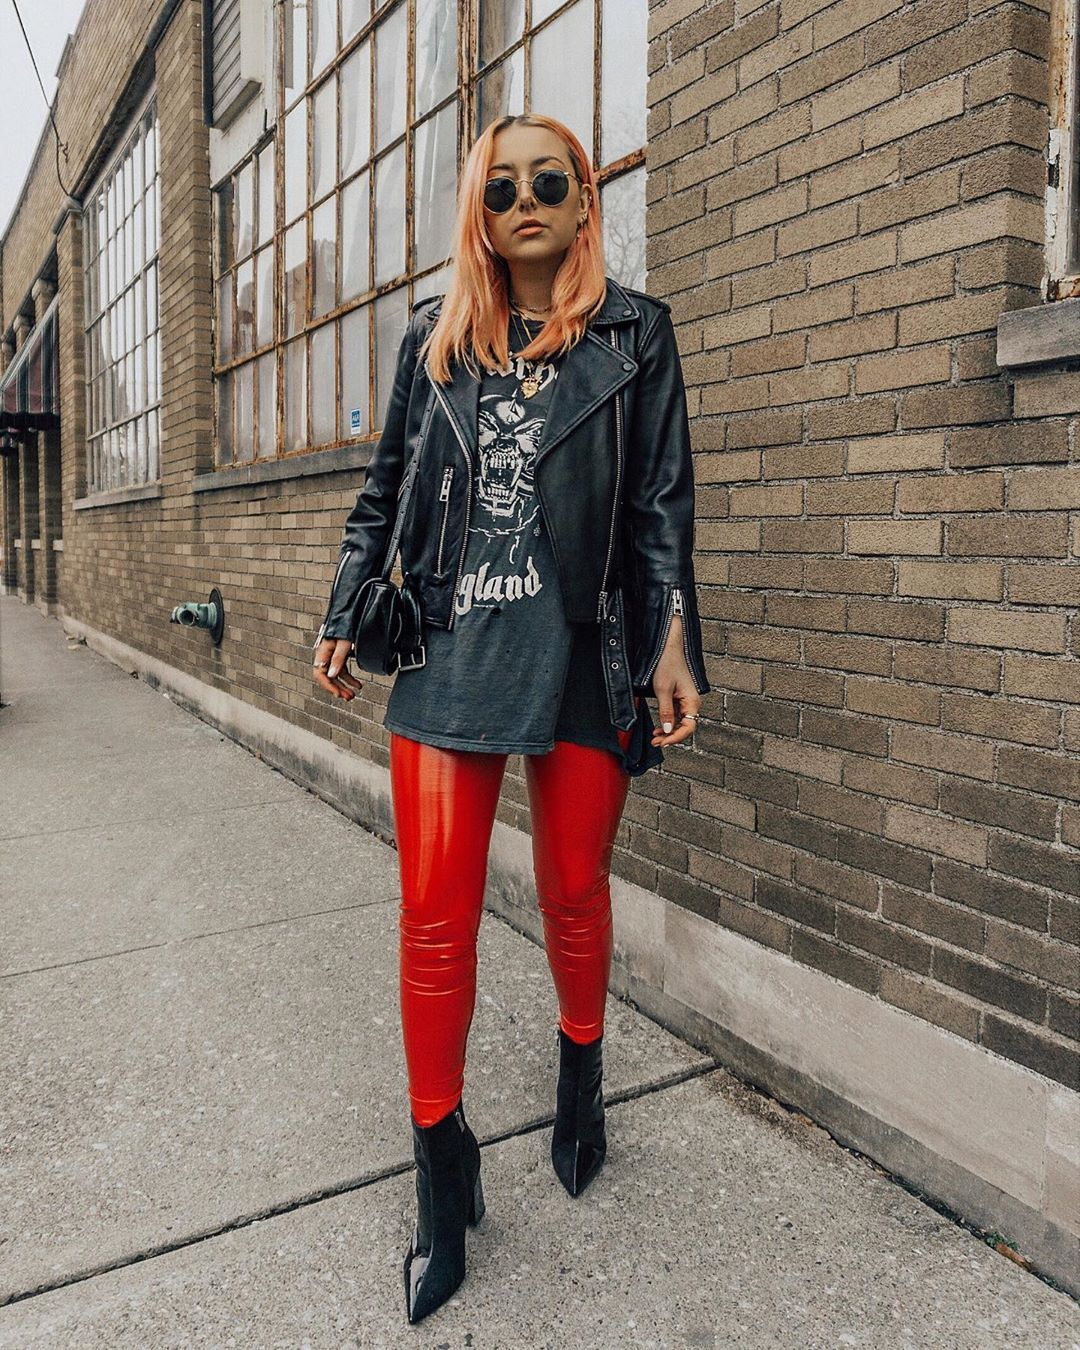 𝓷𝓲𝓬𝓸𝓵𝓮 𝓪𝓵𝔂𝓼𝓮 On Instagram Not Sure How I Ve Gone Through Life Until Now Without Red Vinyl Leggings But Now In 2020 Vinyl Leggings Fashion Clothes